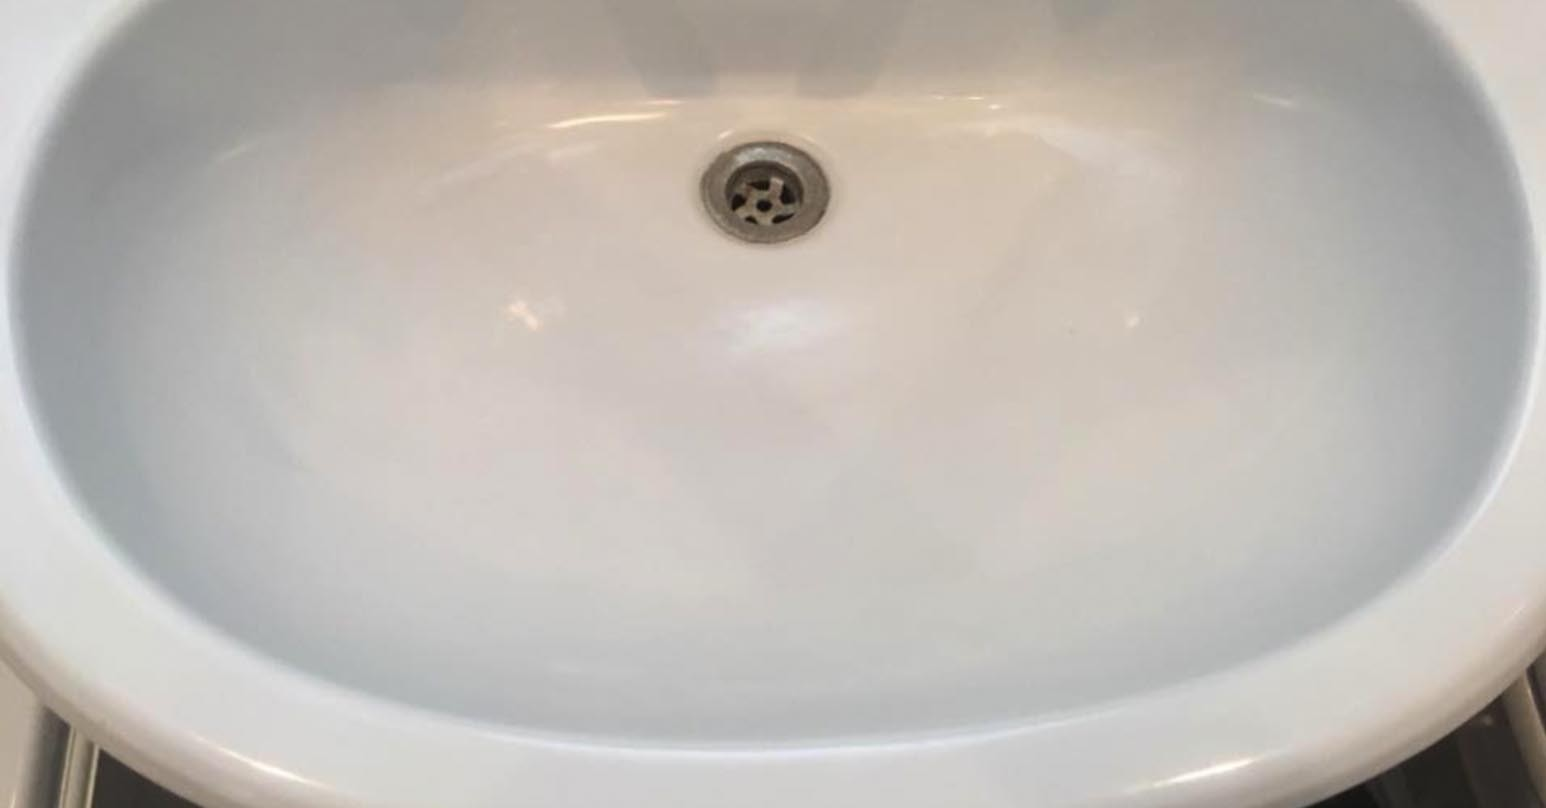 Damaged bathroom sink - After repairing hole